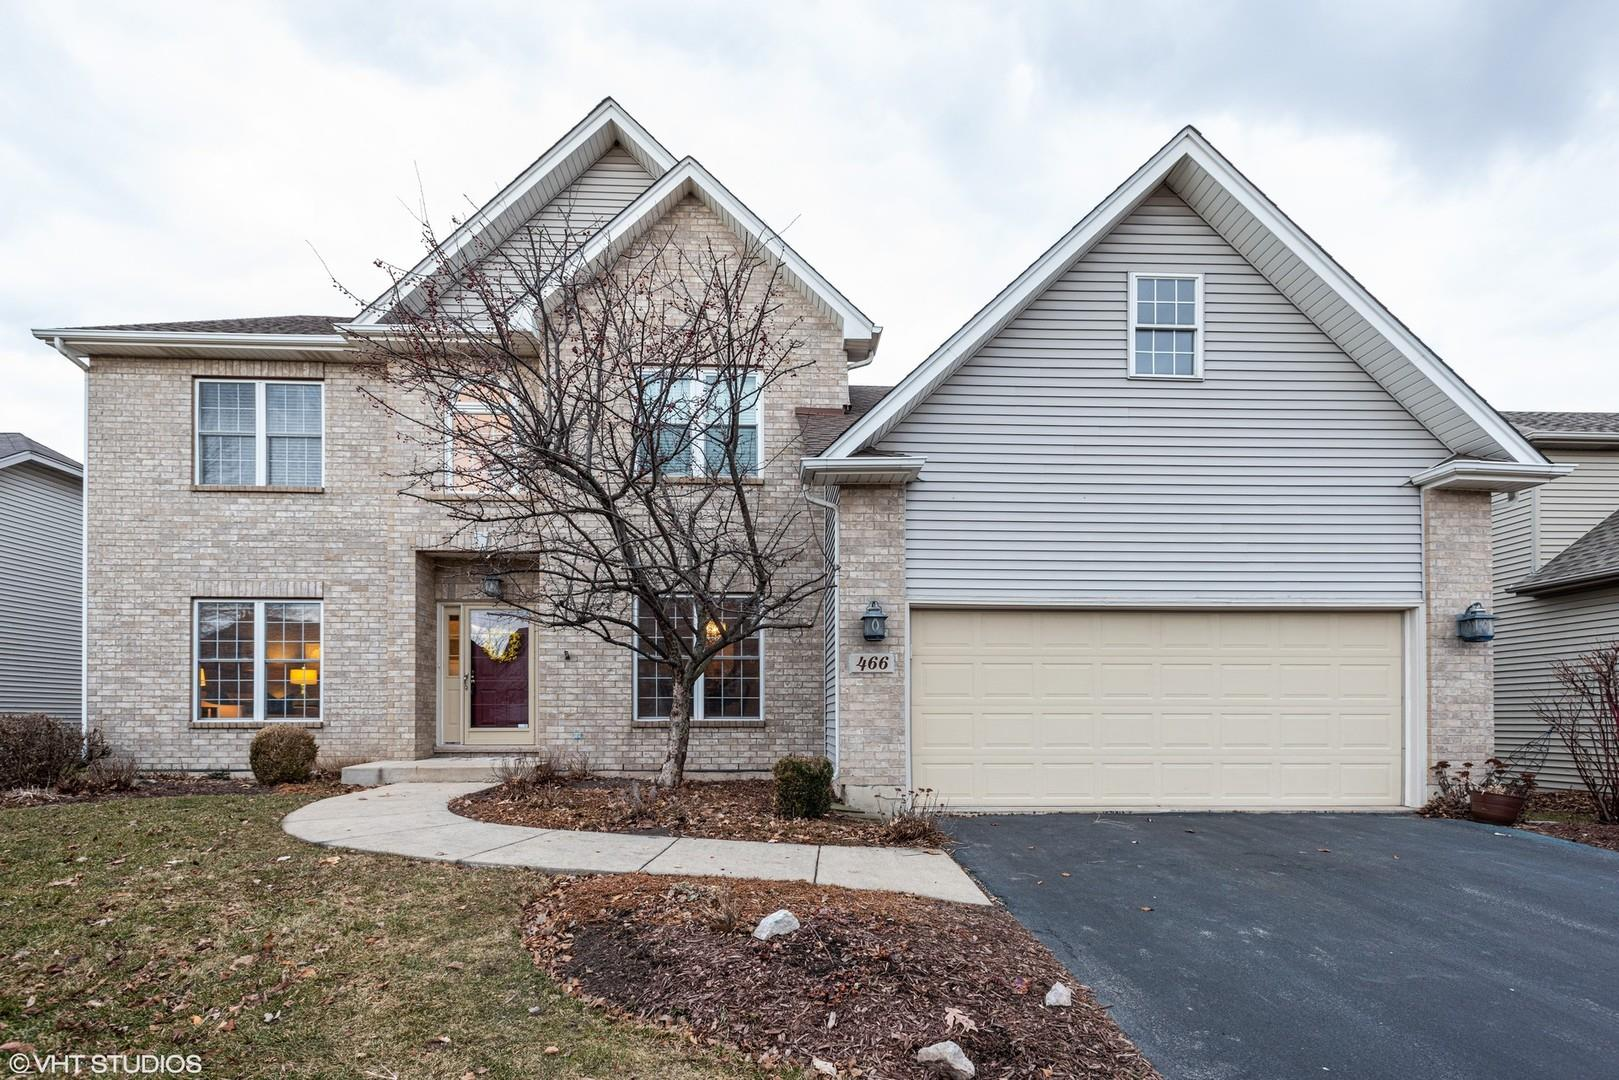 466 Carriage Way, South Elgin, IL 60177 - #: 10644171